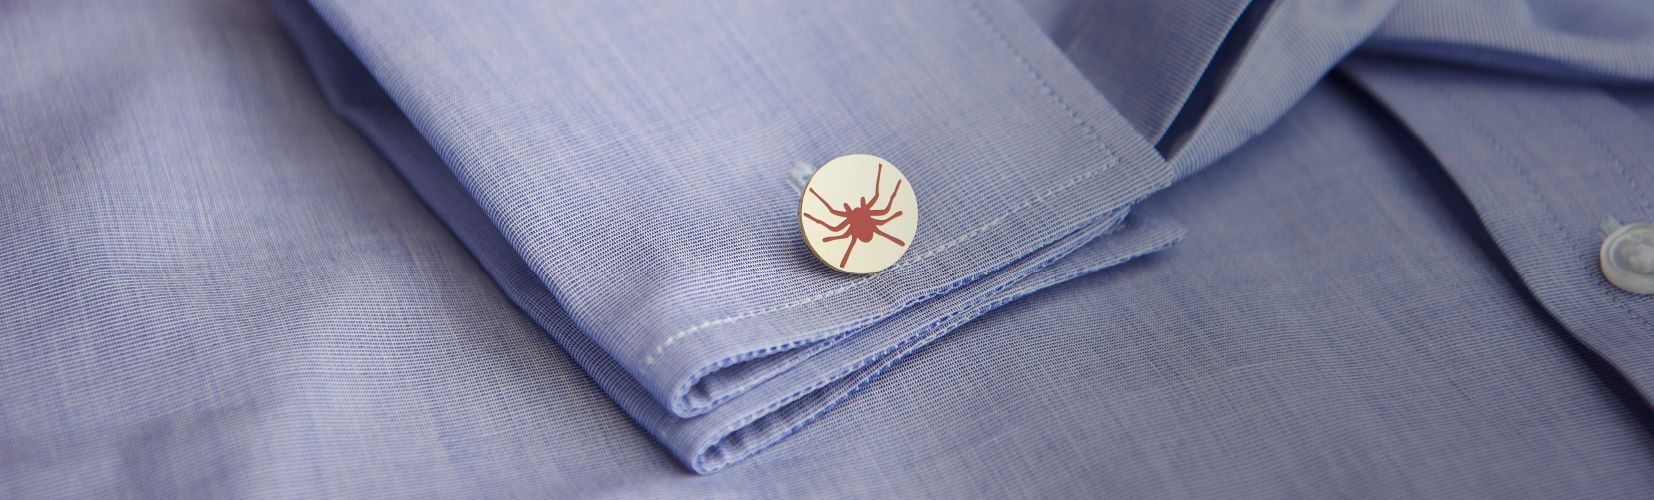 Huntsman Ready to Wear Shirt Shop Header Image - Shirt with Gold Cufflink